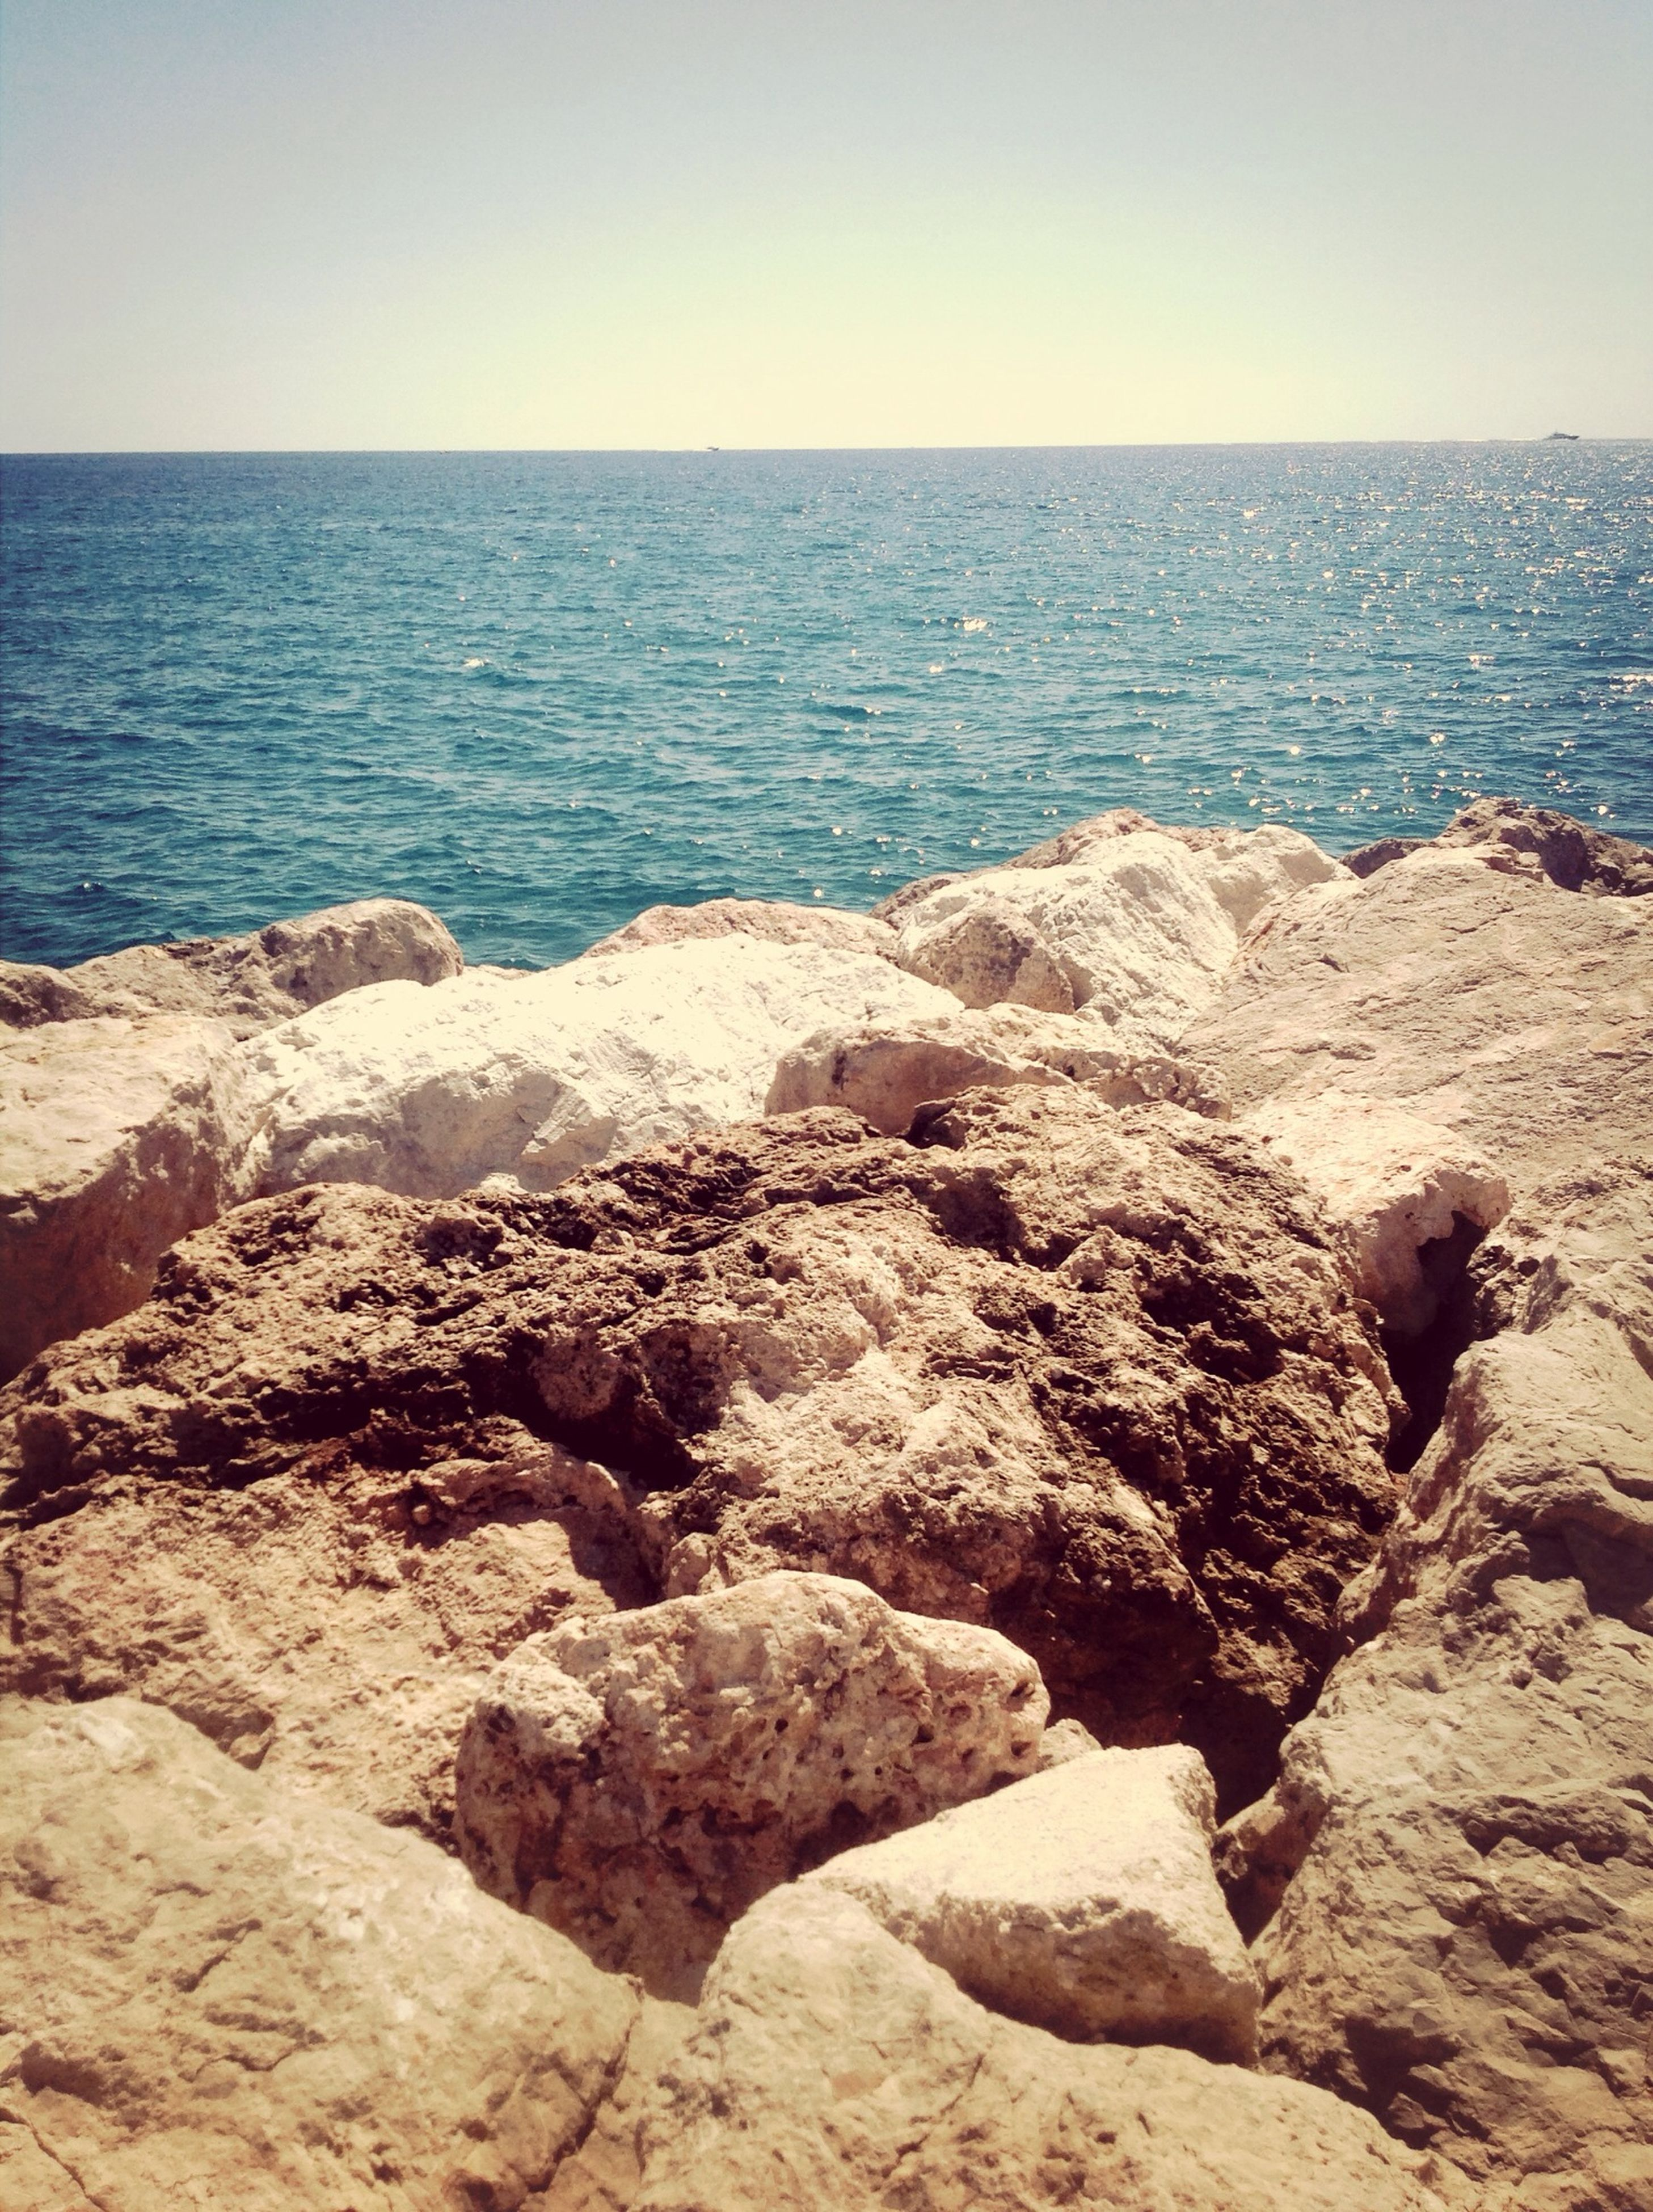 sea, horizon over water, water, scenics, tranquil scene, tranquility, clear sky, beauty in nature, beach, nature, rock - object, shore, idyllic, rock formation, sky, rock, blue, copy space, seascape, remote